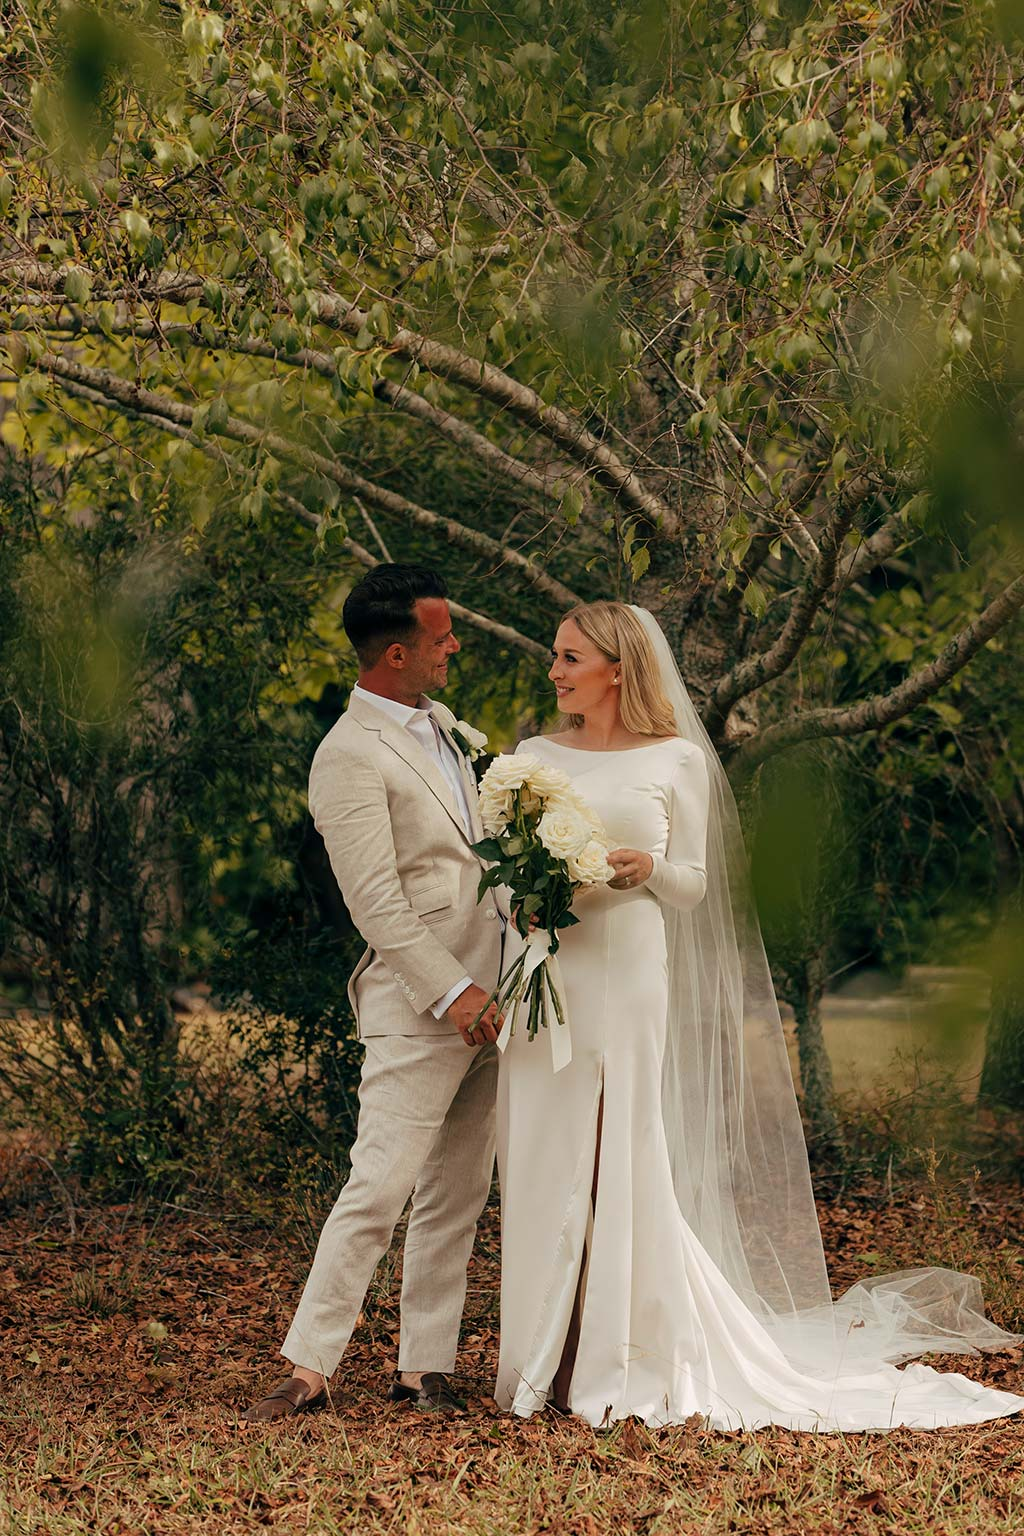 Vinka Design Bridal Wear features Real Wedding Matt and Emilia - bride and groom embrace, bride wearing bespoke Audrey gown from Modern Muse Collection with beautiful long train flowing to her side